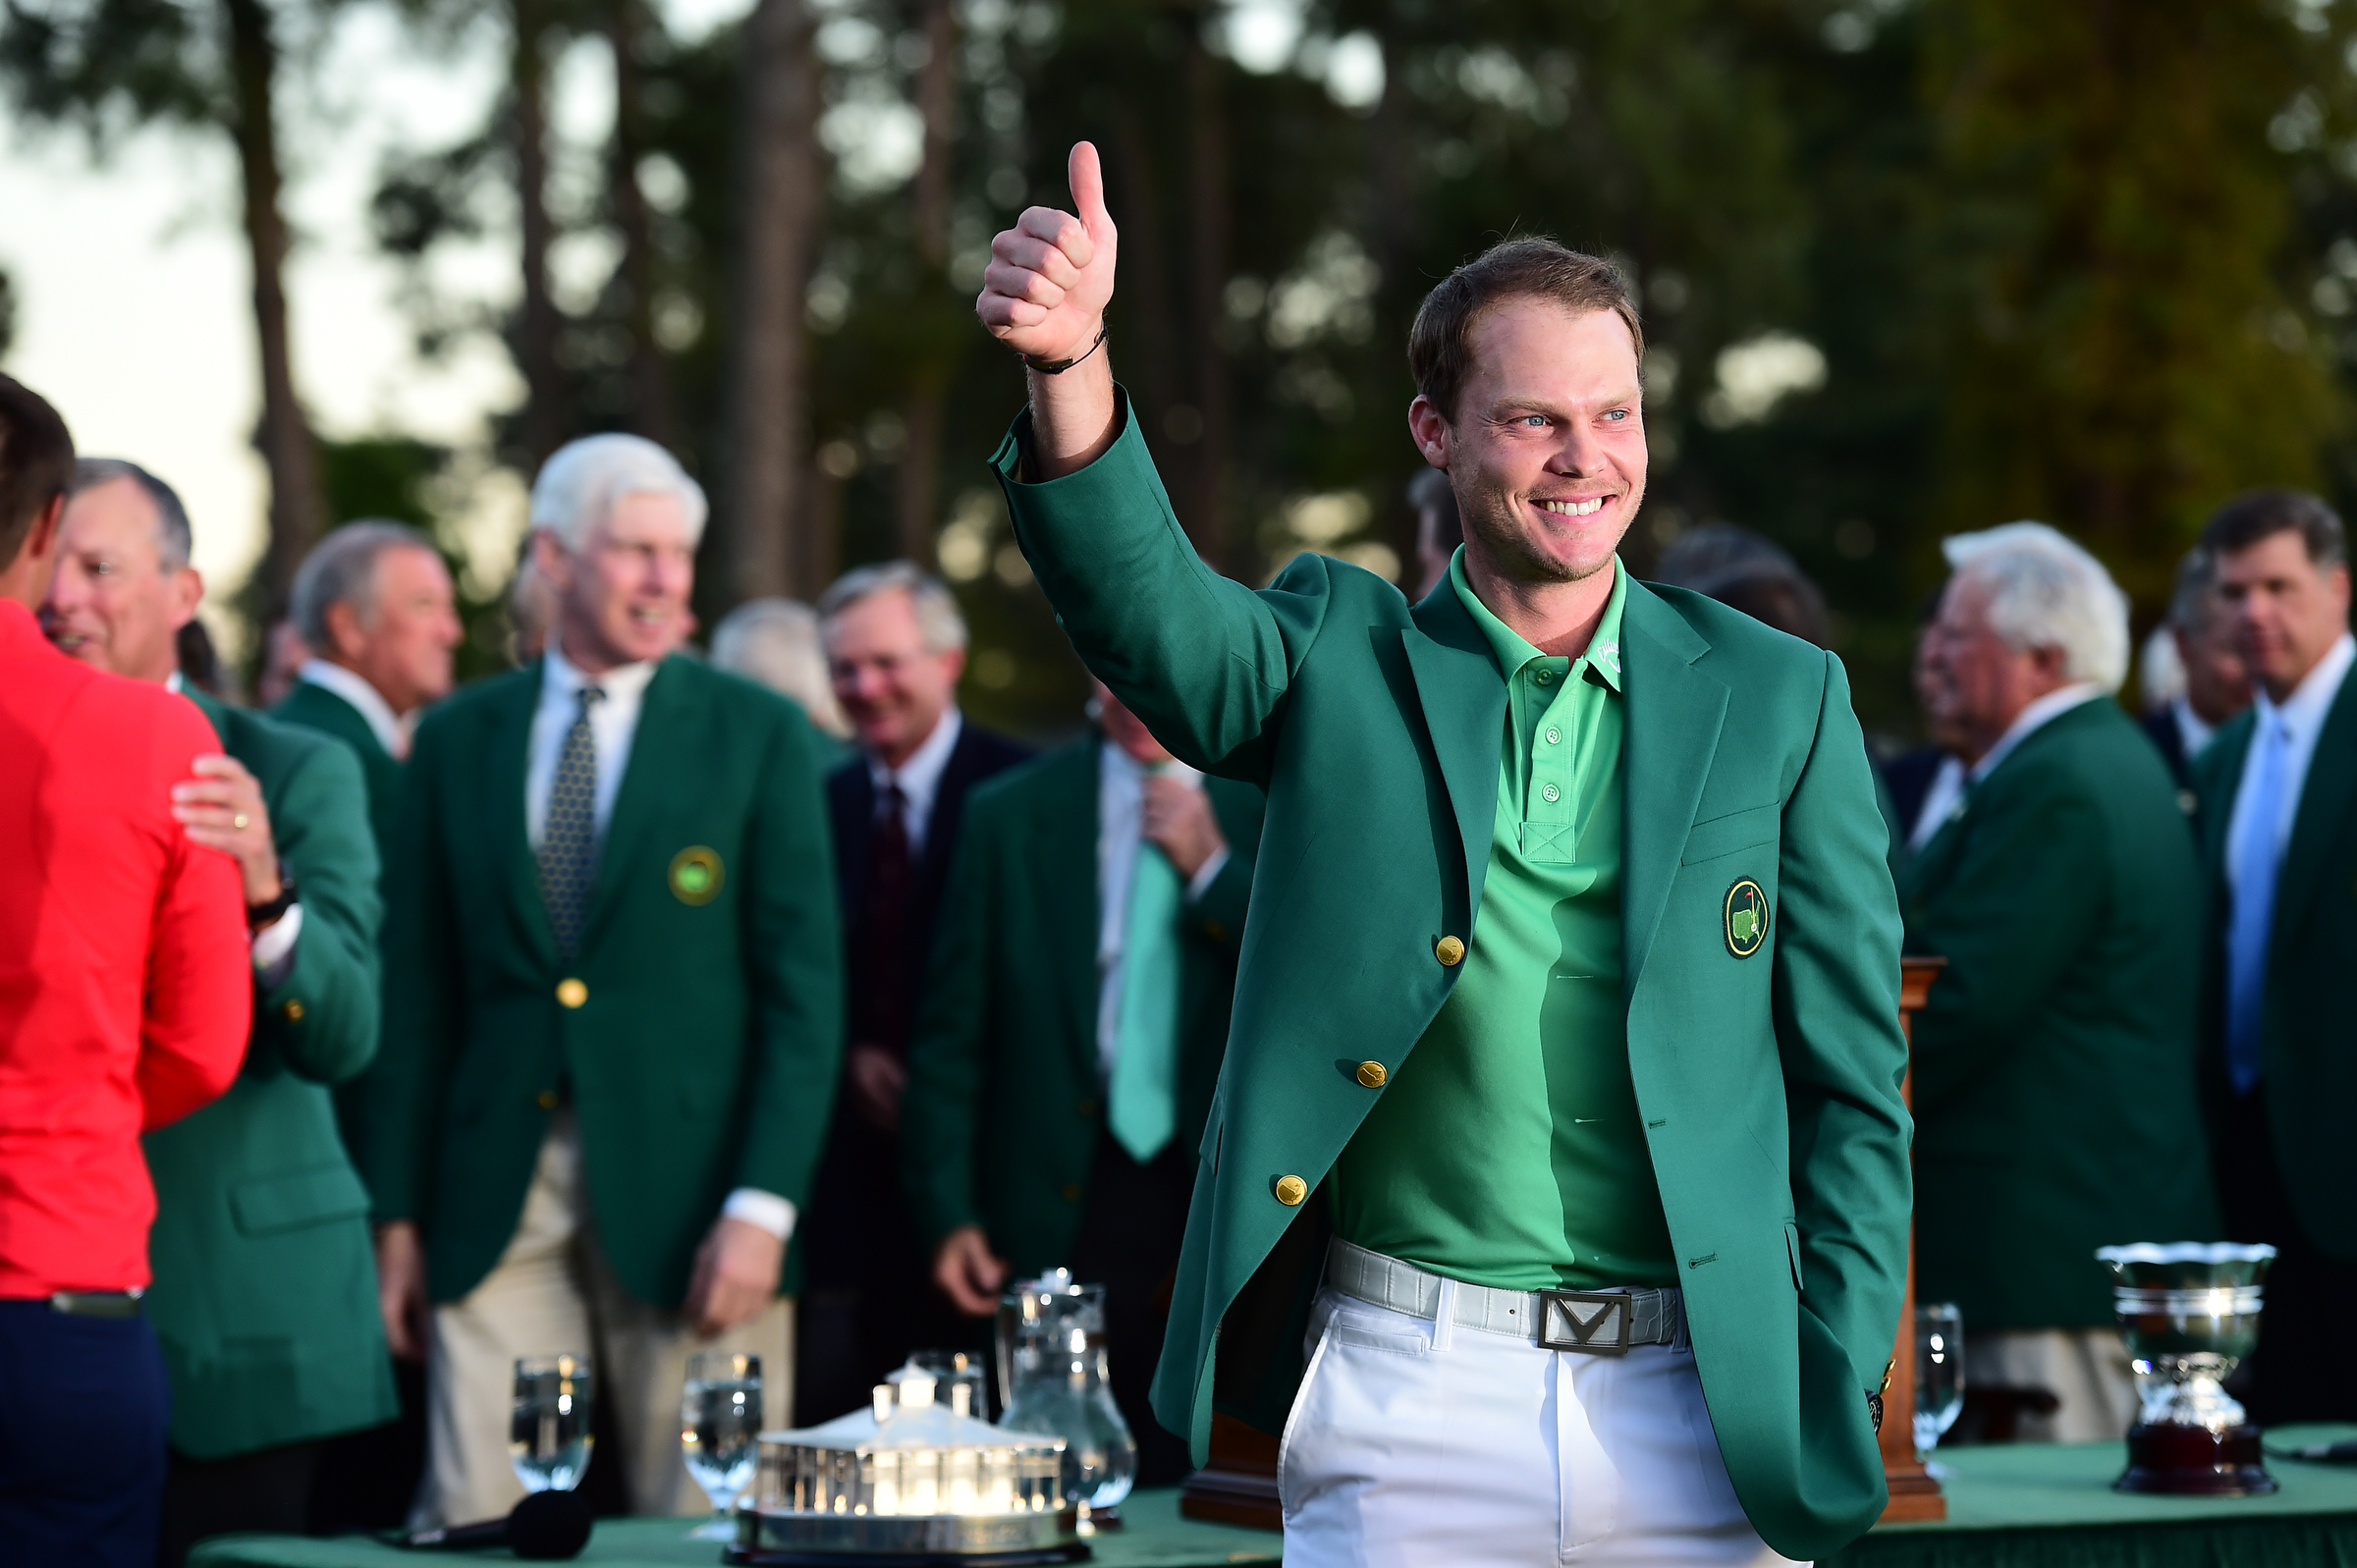 Danny Willett poses for the cameras while wearing the green jacket after winning the 2016 Masters Tournament.